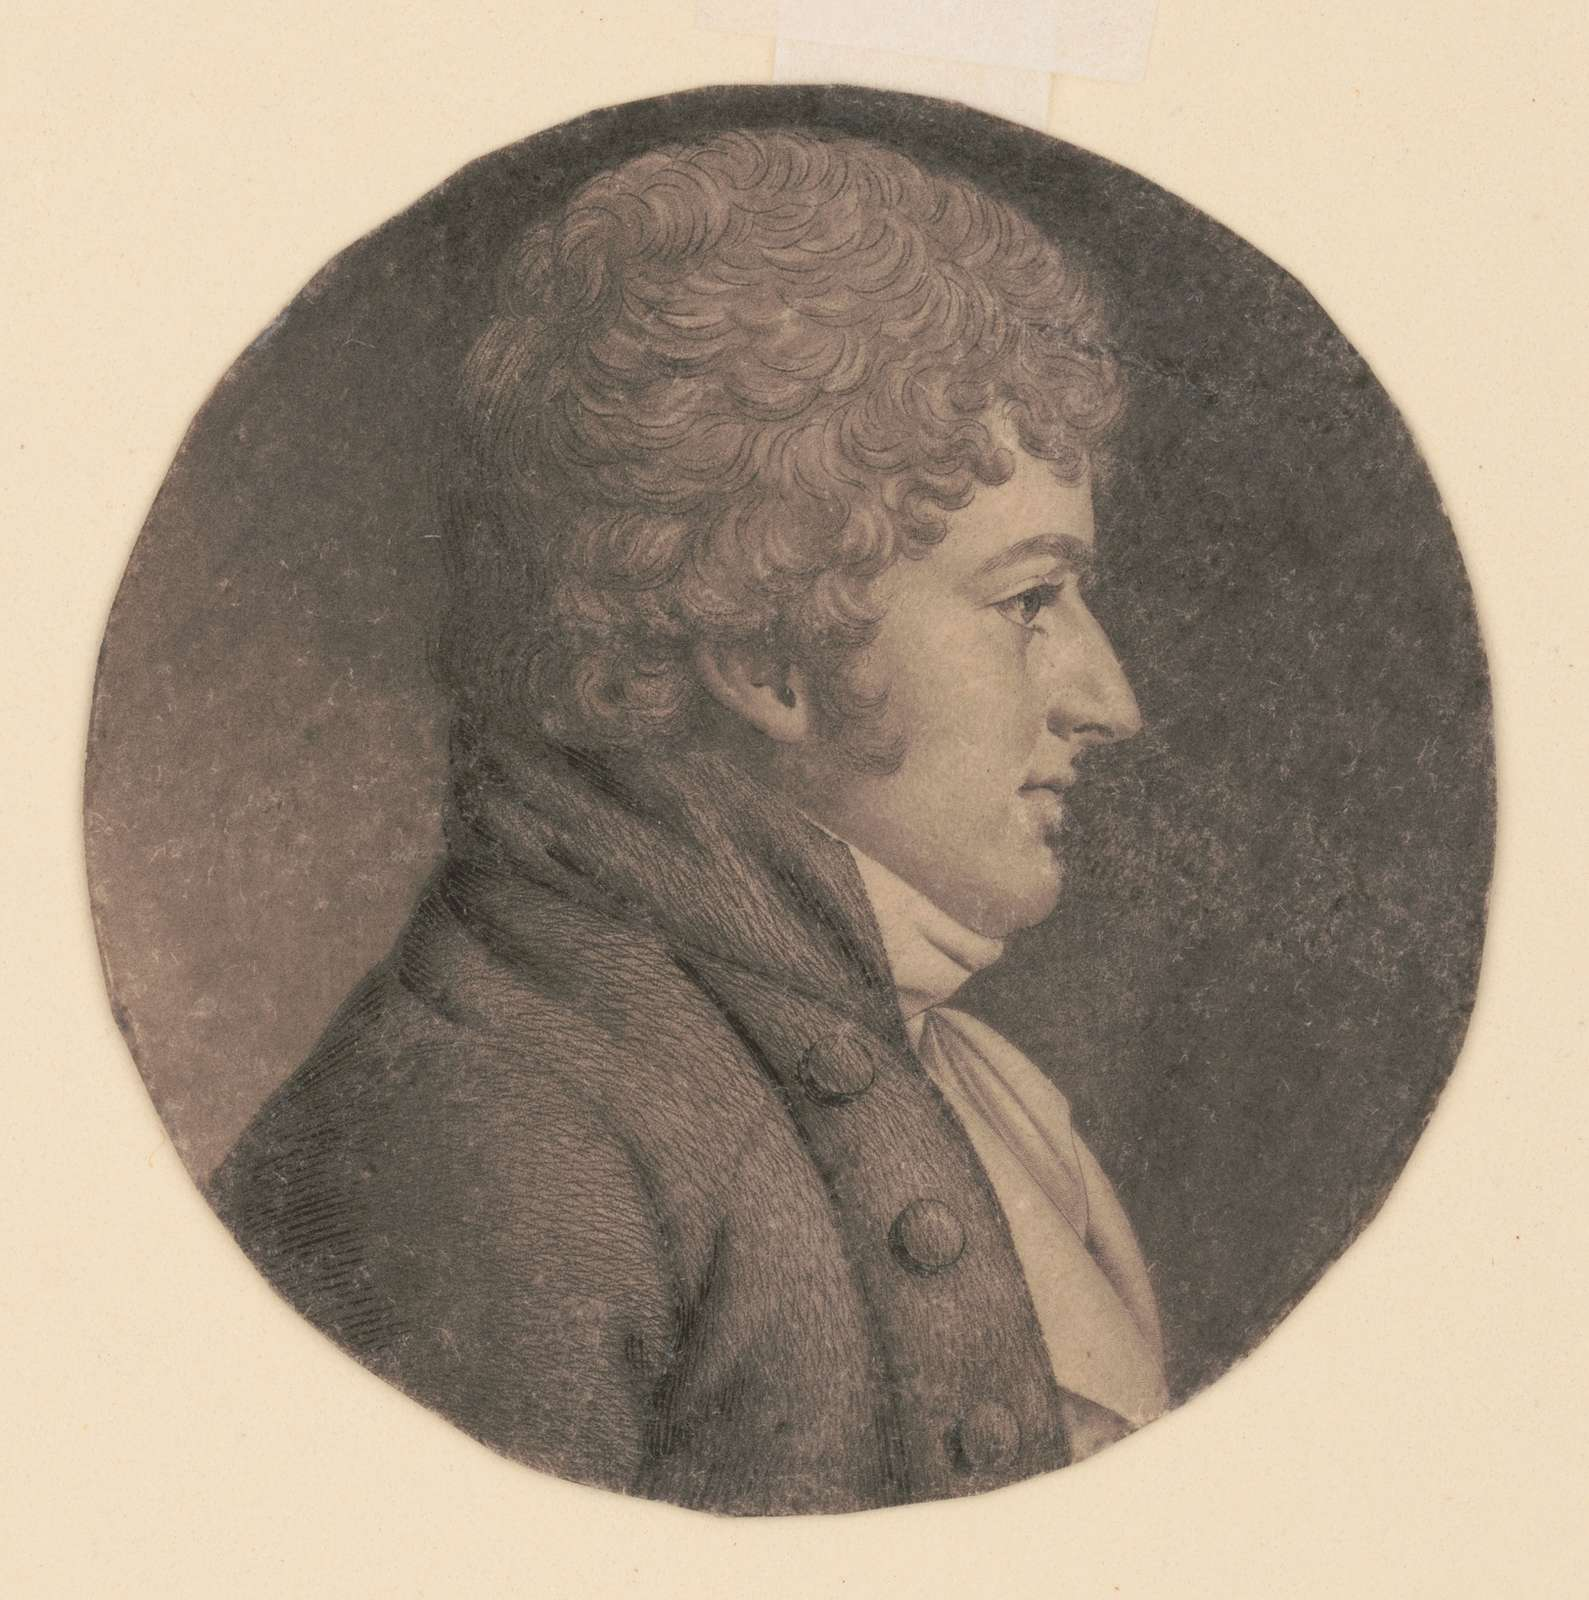 Anthony Fothergill, head-and-shoulders portrait, right profile